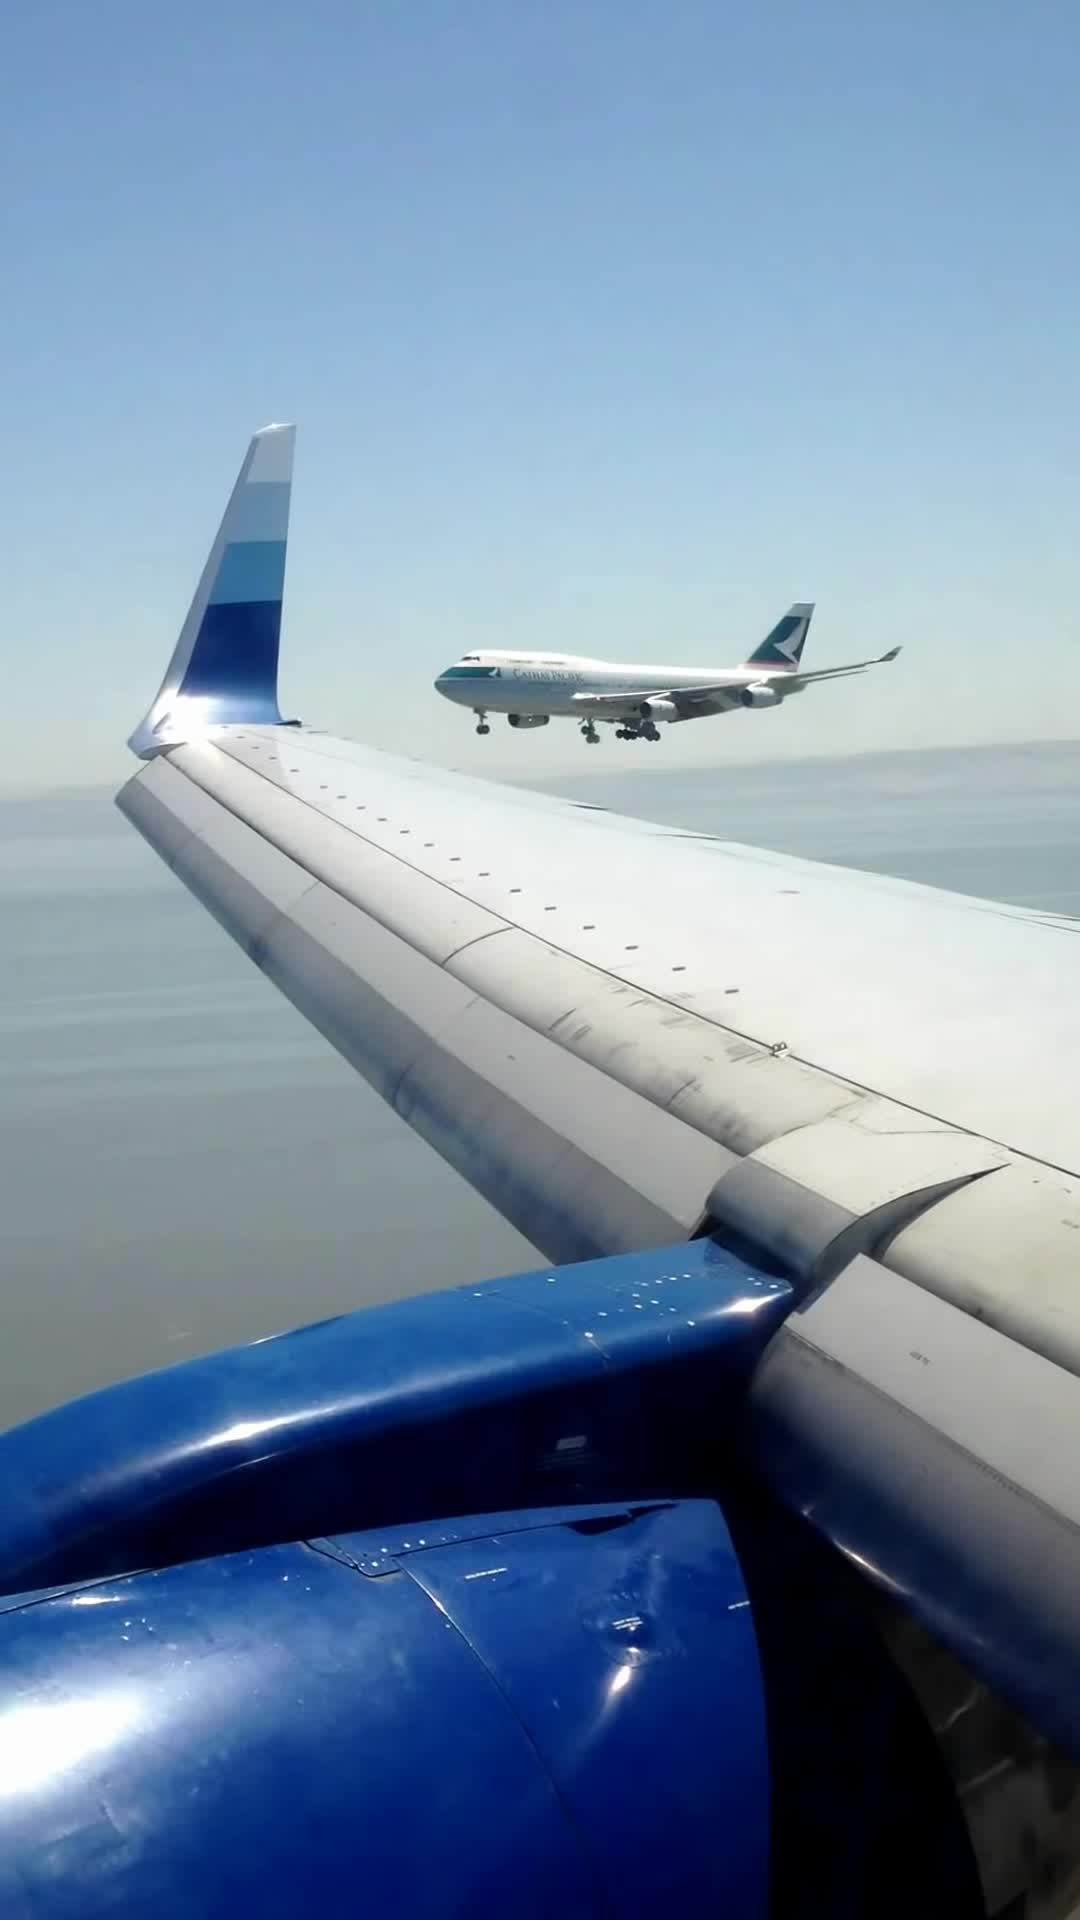 747, Boeing 747 (Aircraft Model), Landing, United Airlines (Airline), air traffic control, cathay pacific, san francisco, san francisco airport, san francisco international airport, sfo, UA 757 Go-Around @ SFO After Losing Separation w/ Cathay 747 GIFs